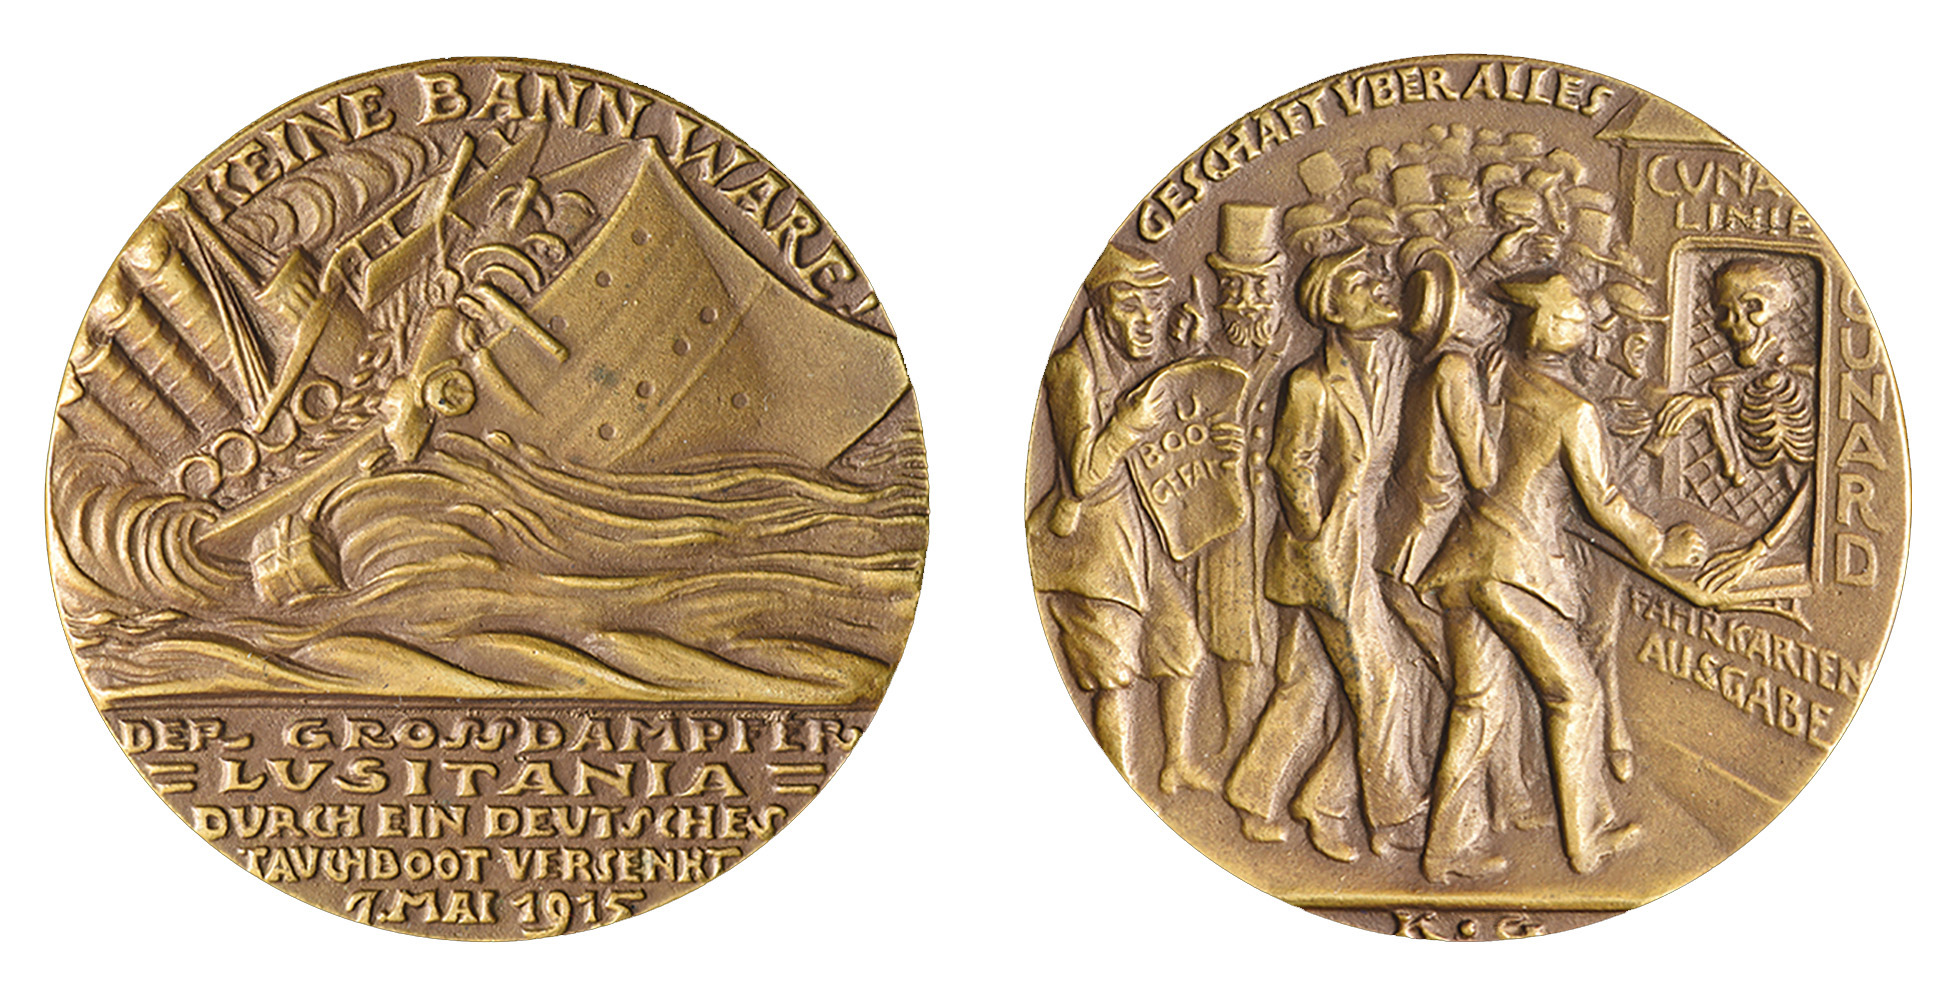 The second version of the German medal